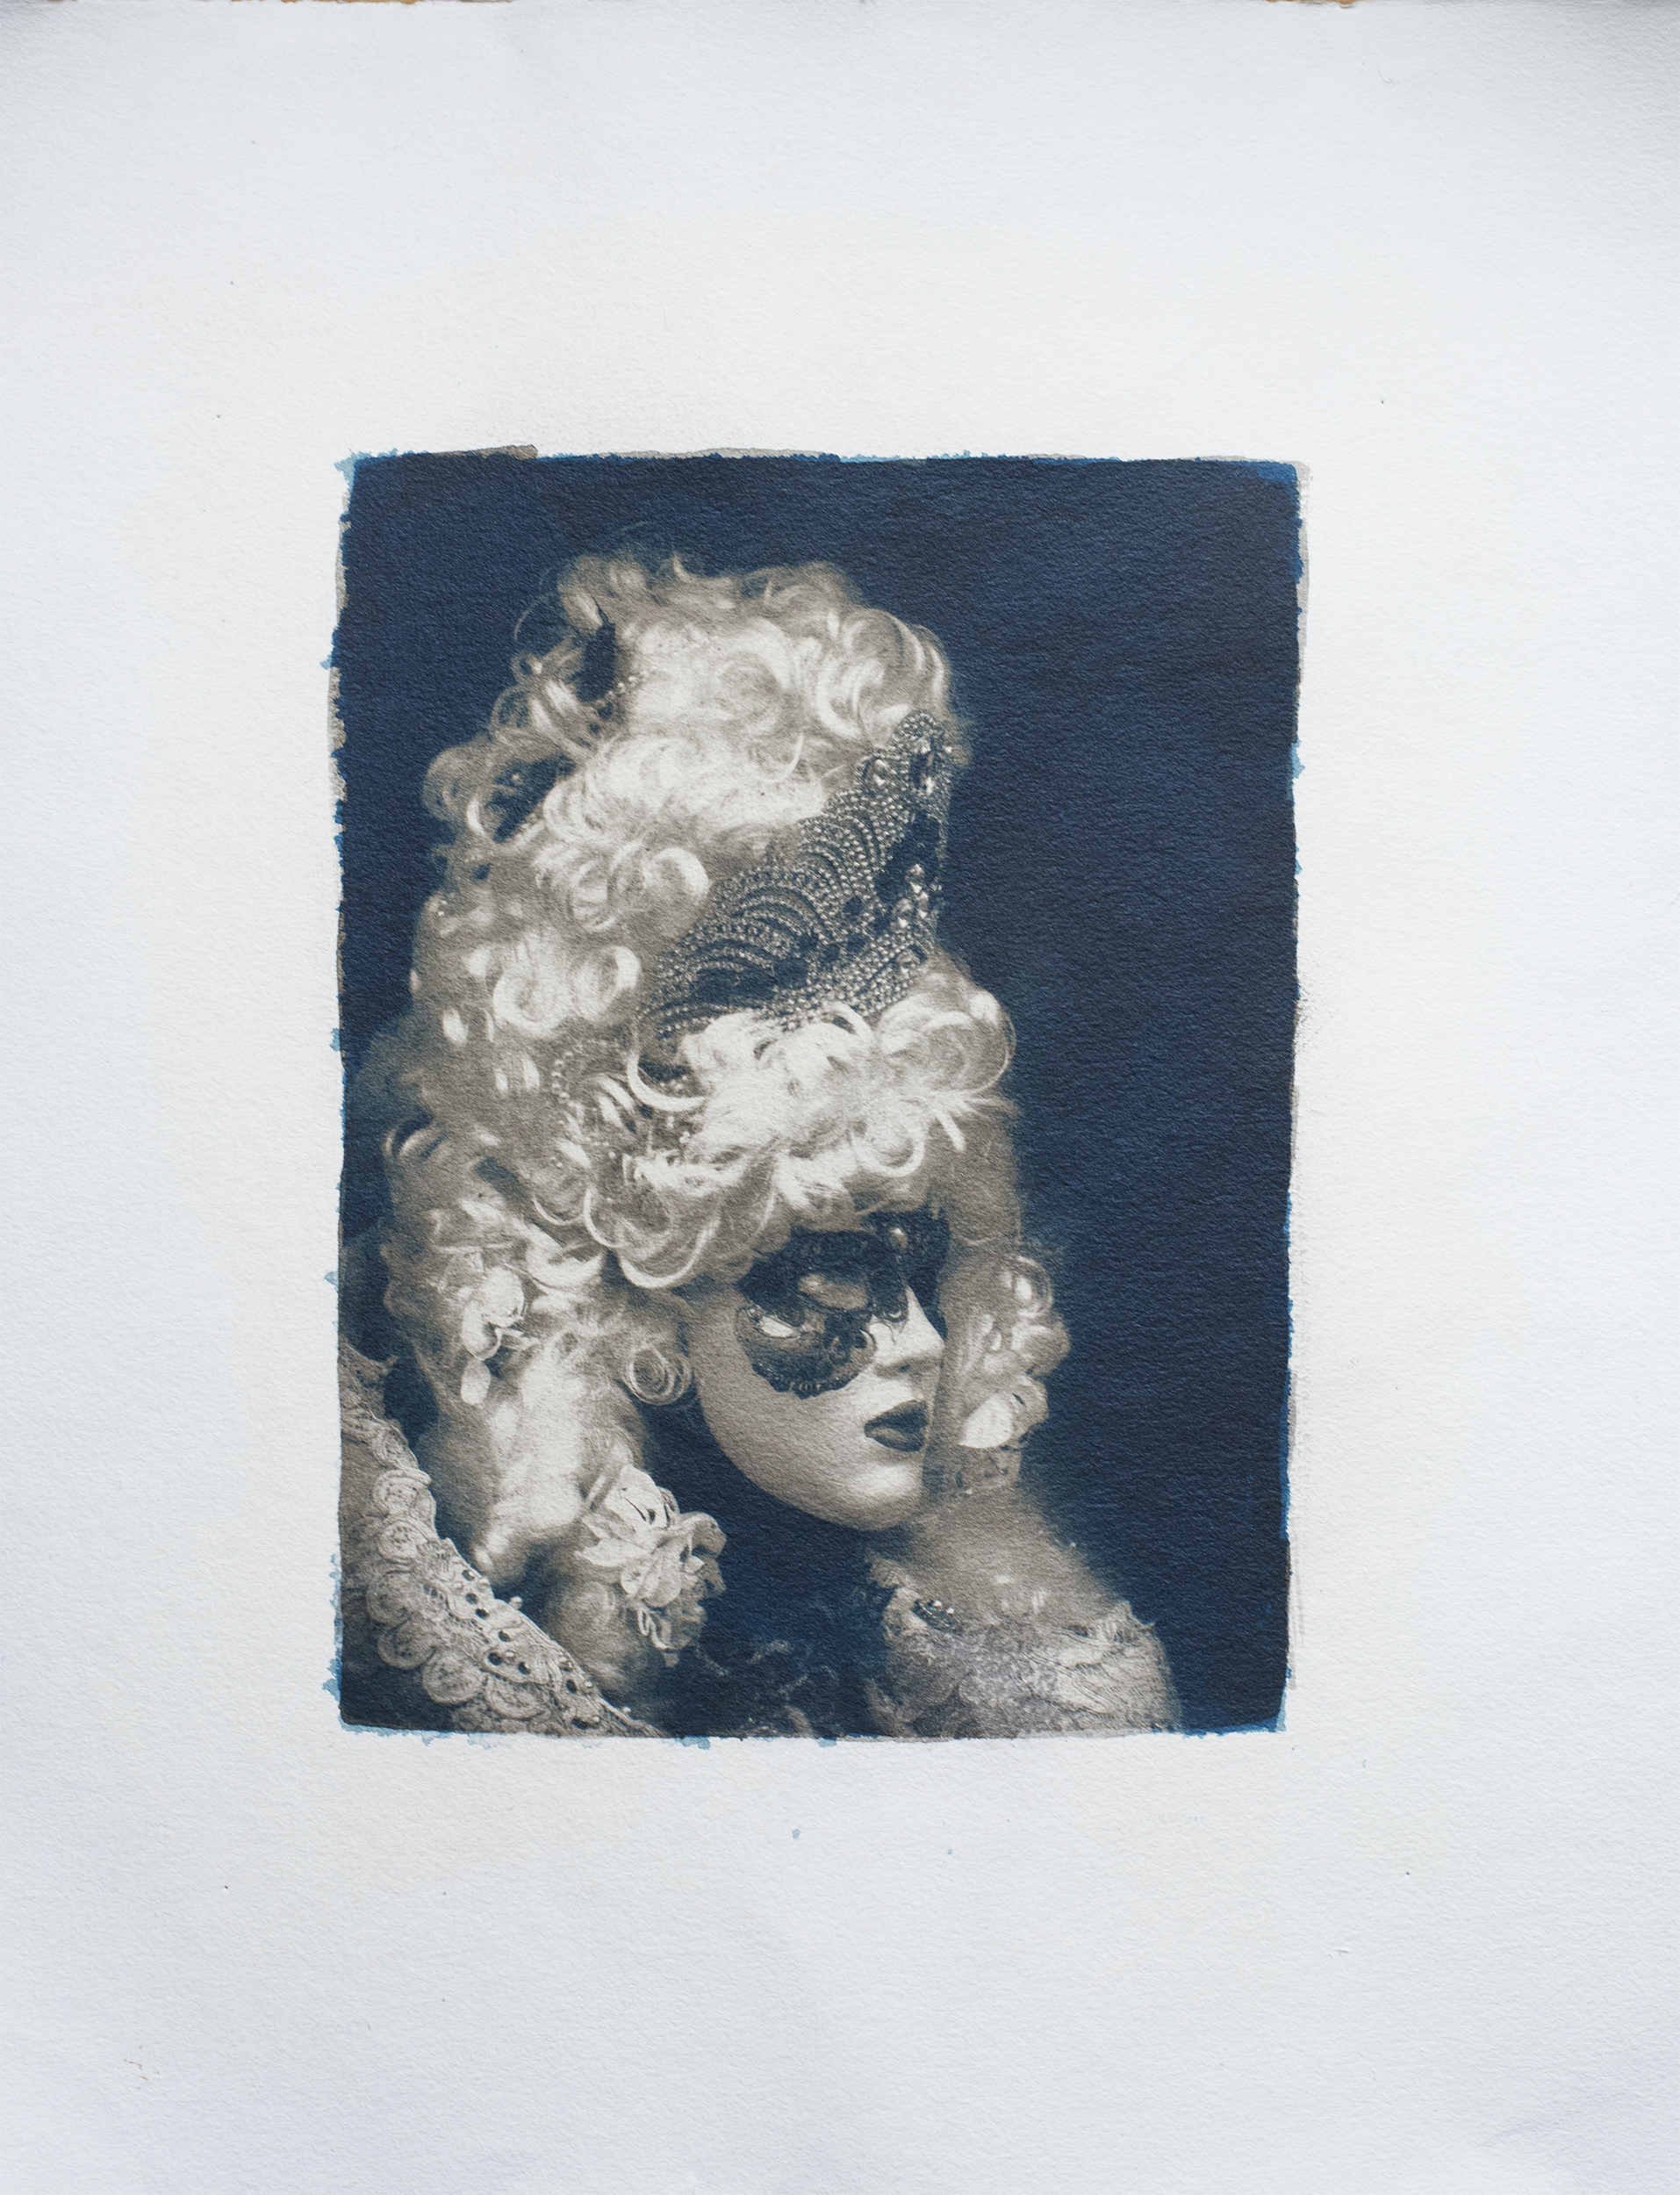 'Big Hair', Carnevale di Venezia